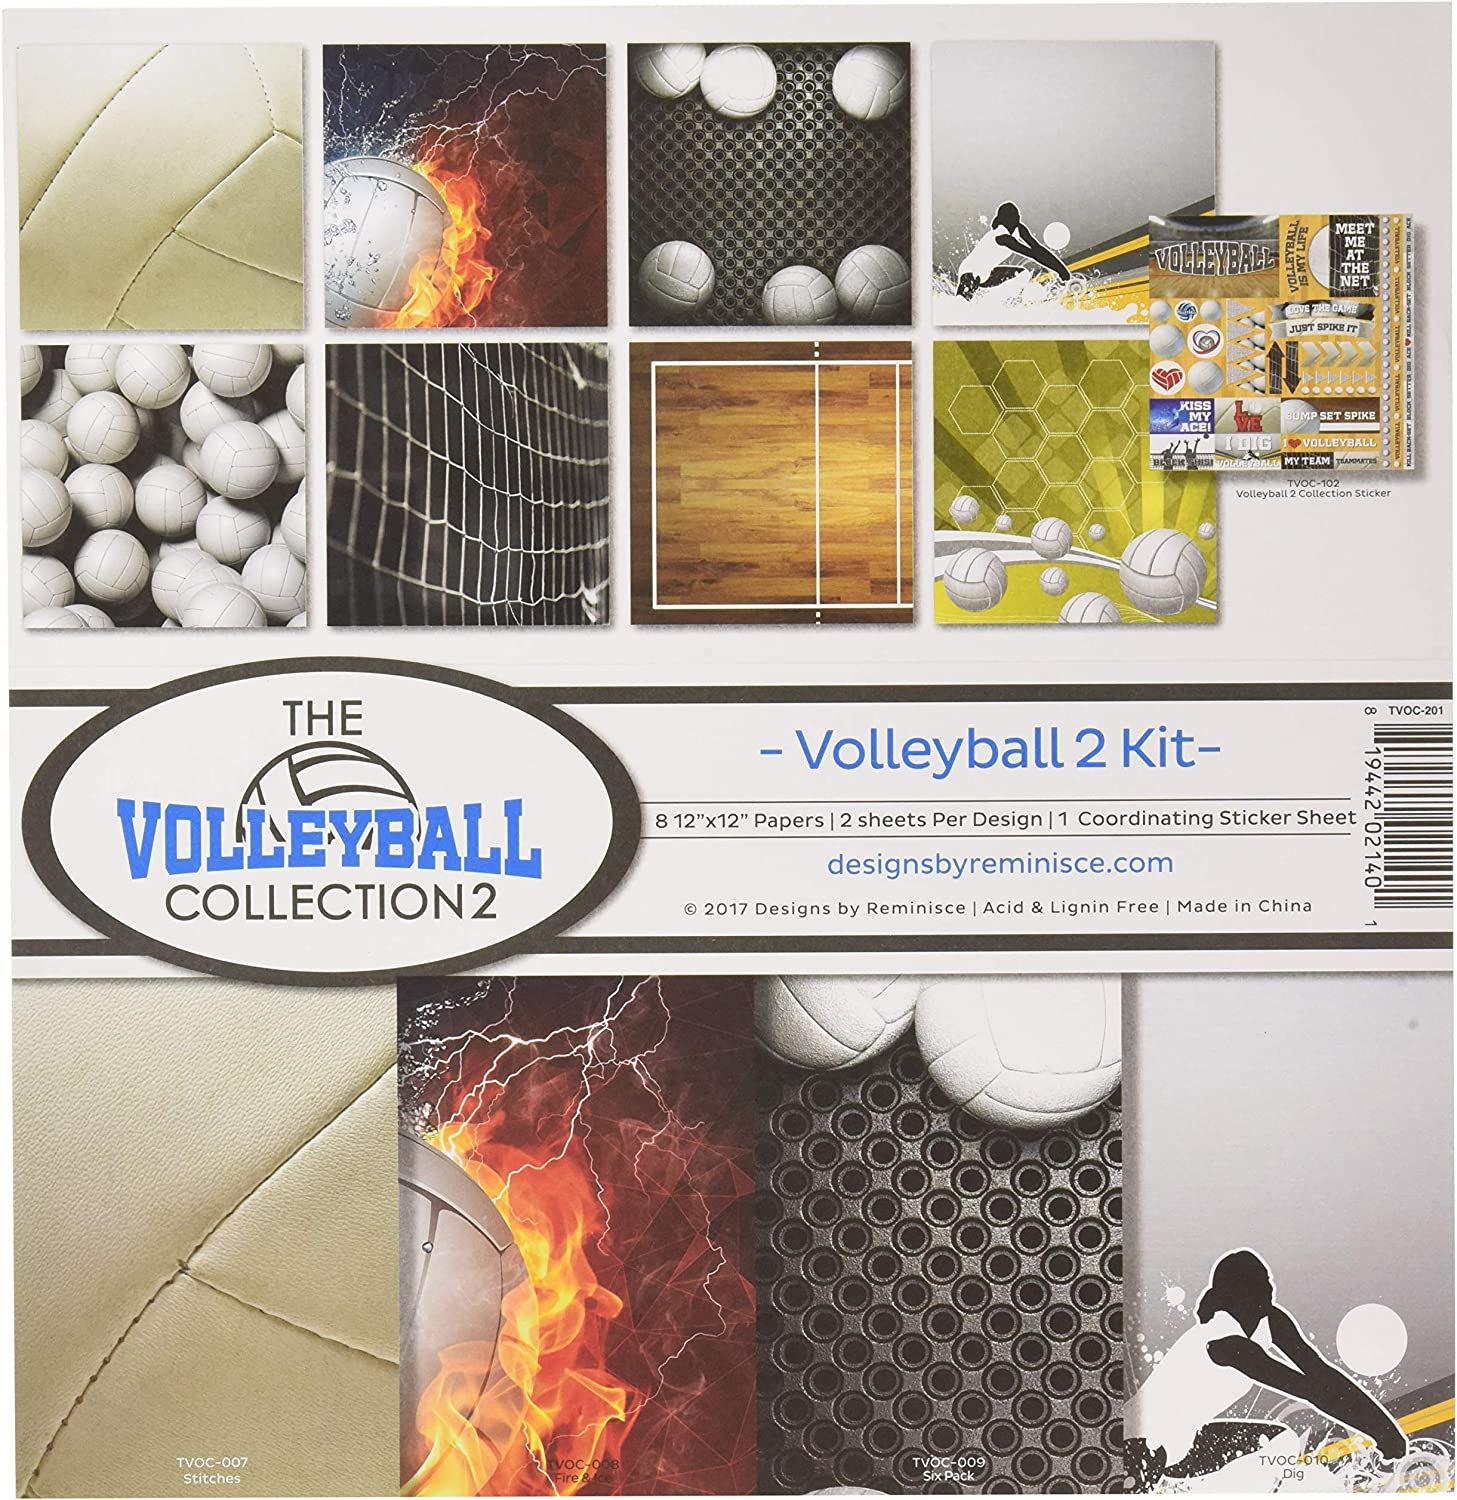 Reminisce The Volleyball Collection 2 Scrapbook Kit